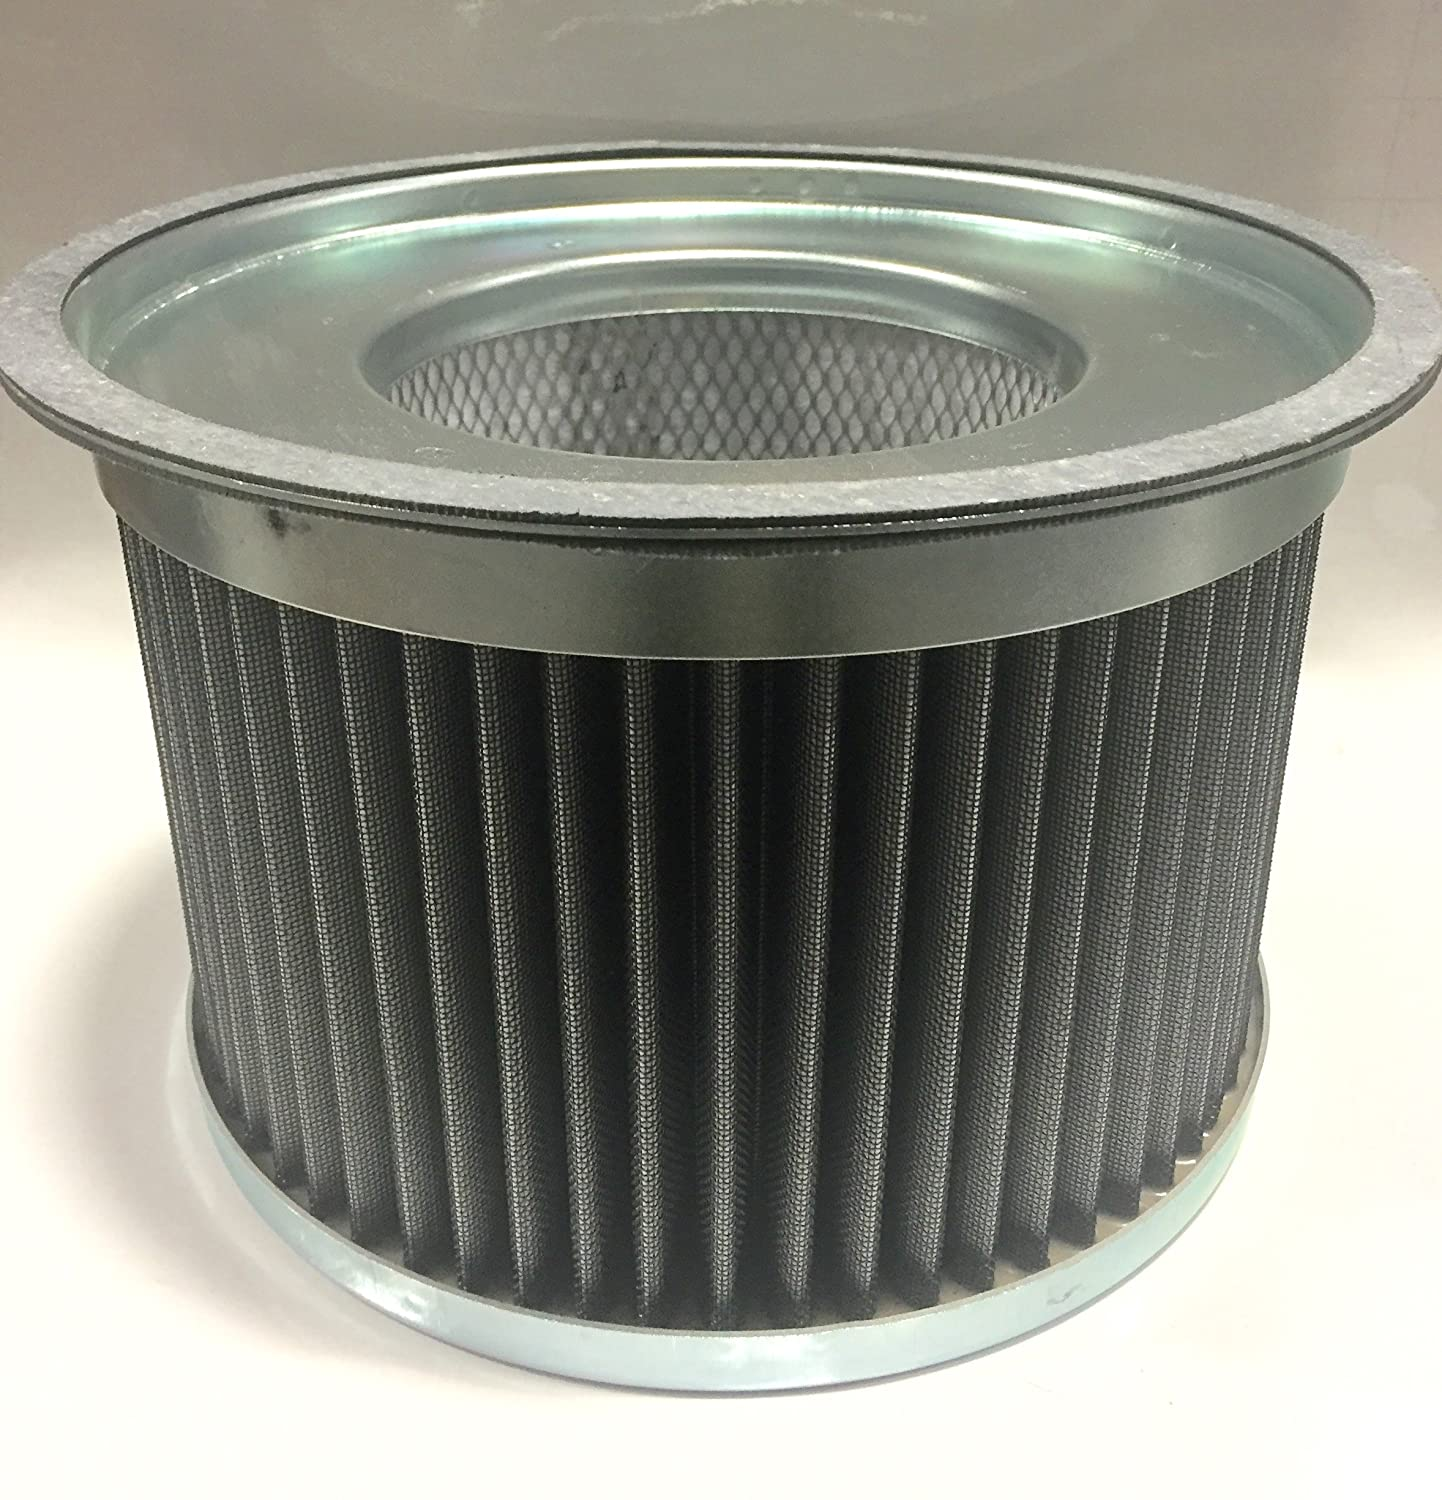 2142002 Puma Air Filter Element Larger of the two Filters Fits 1 Canister